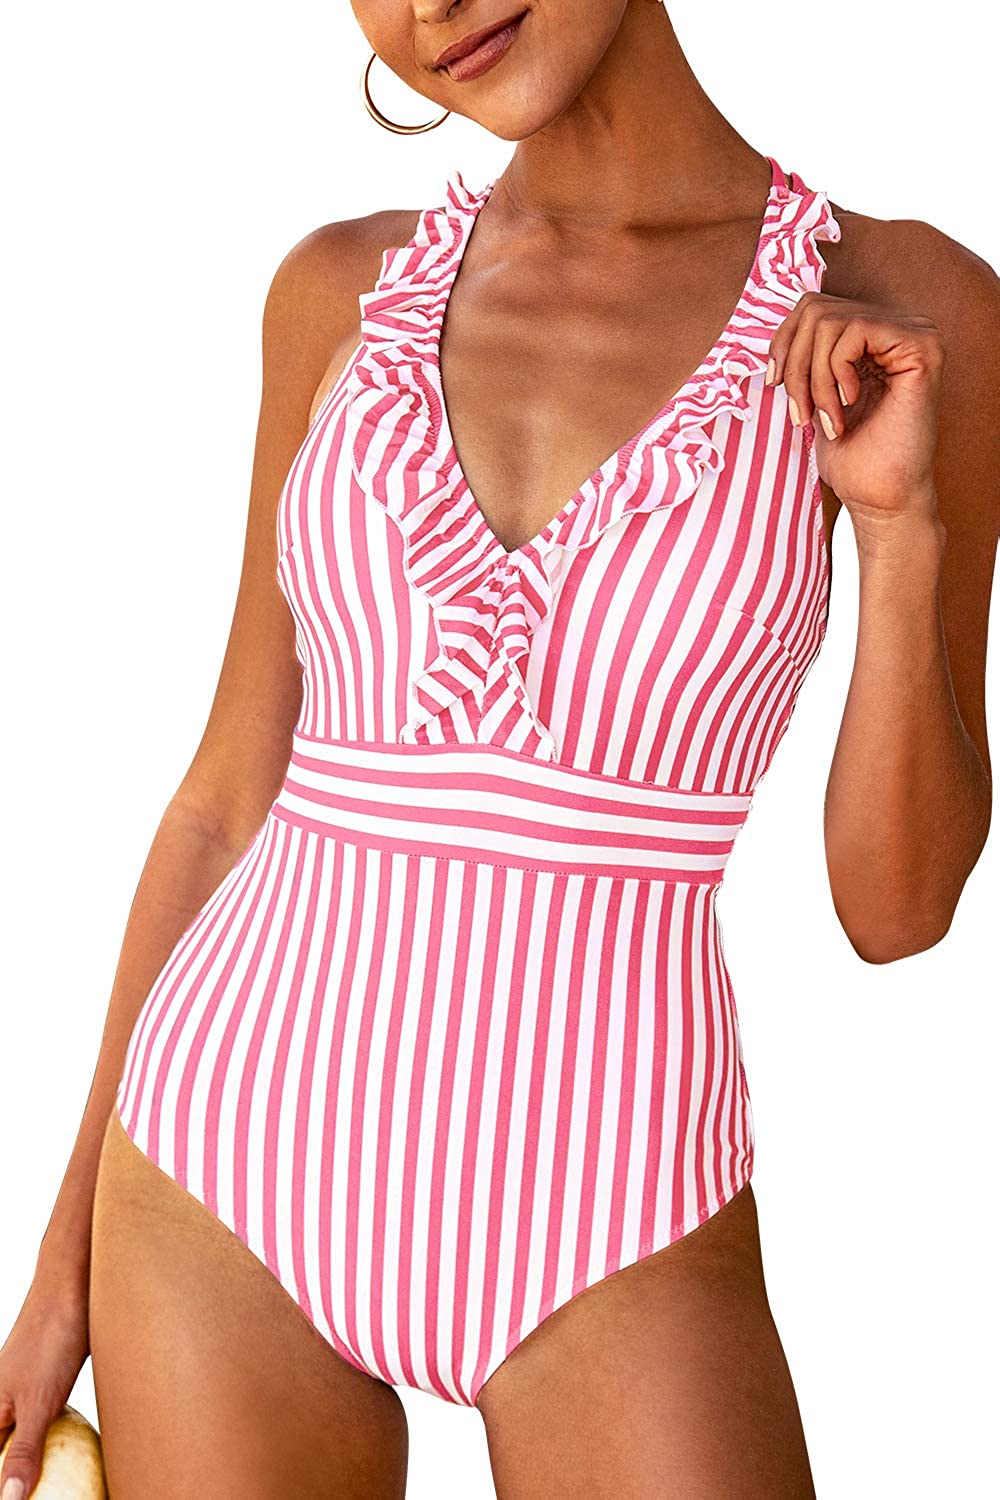 60s Swimsuits, 70s Bathing Suits | Retro Swimwear CUPSHE Womens V Neck One Piece Swimsuit Ruffled Back Cross Swimwear $29.99 AT vintagedancer.com